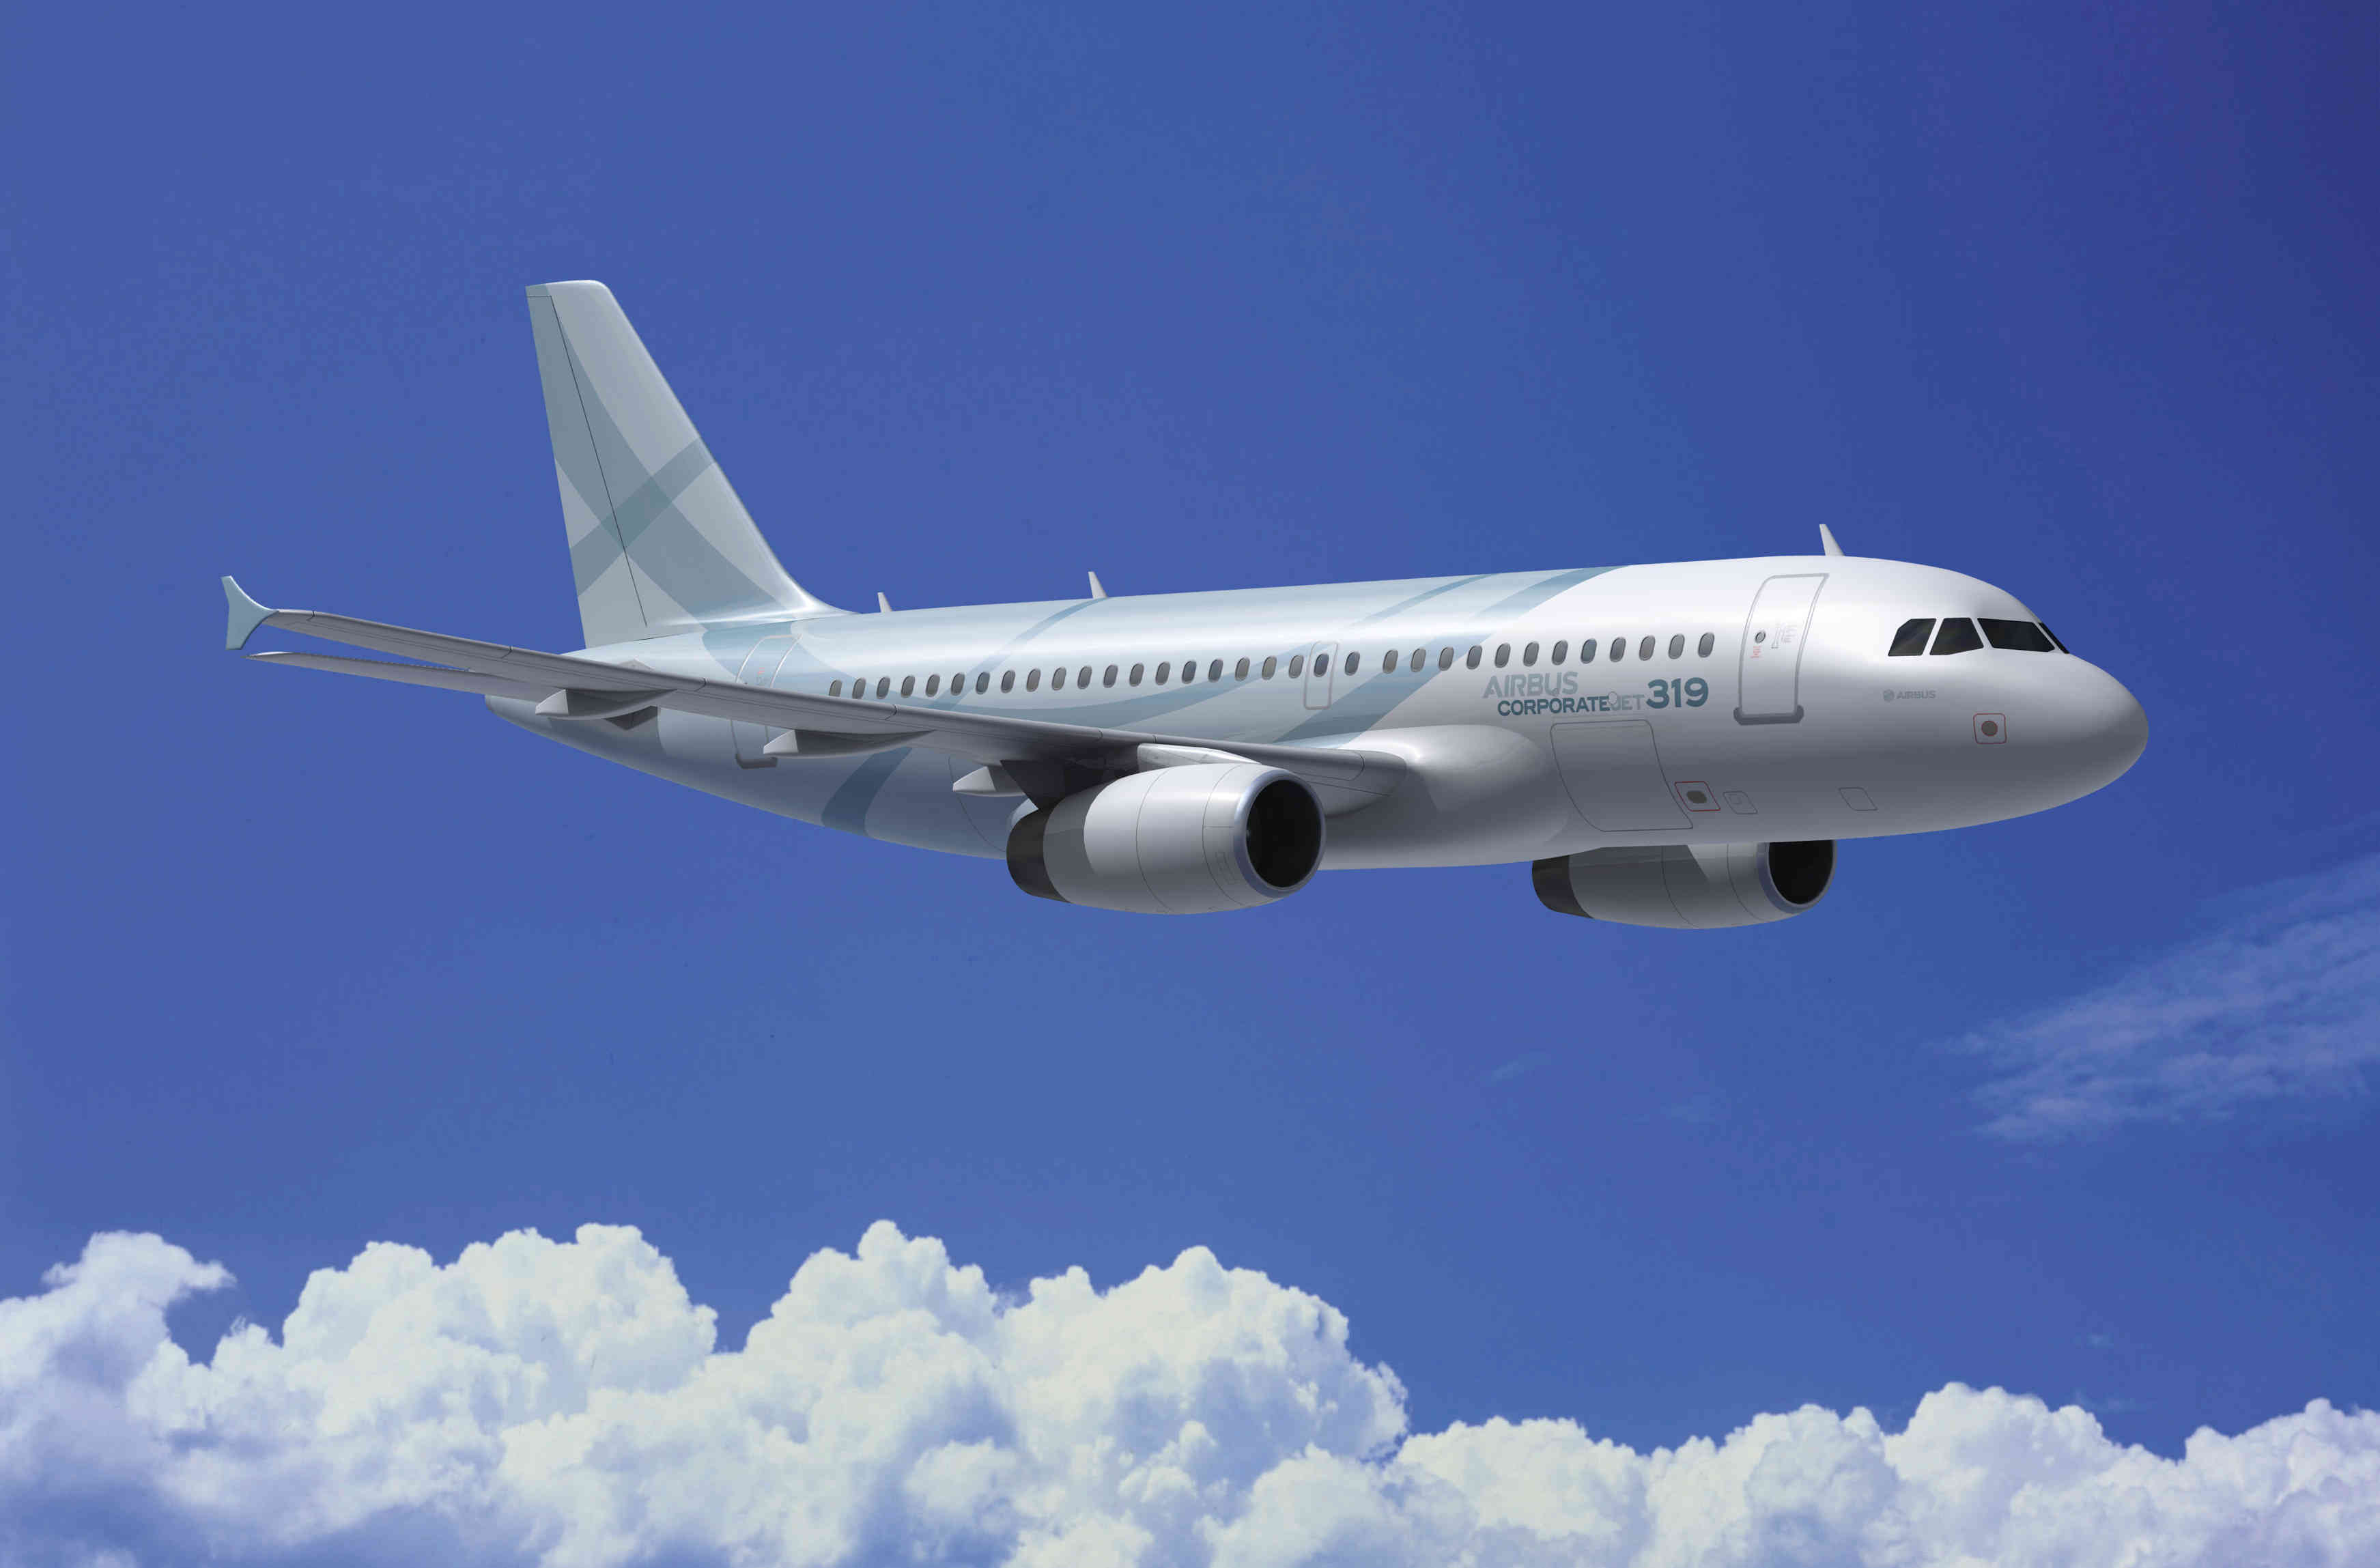 Airbus Corporate Jet A319